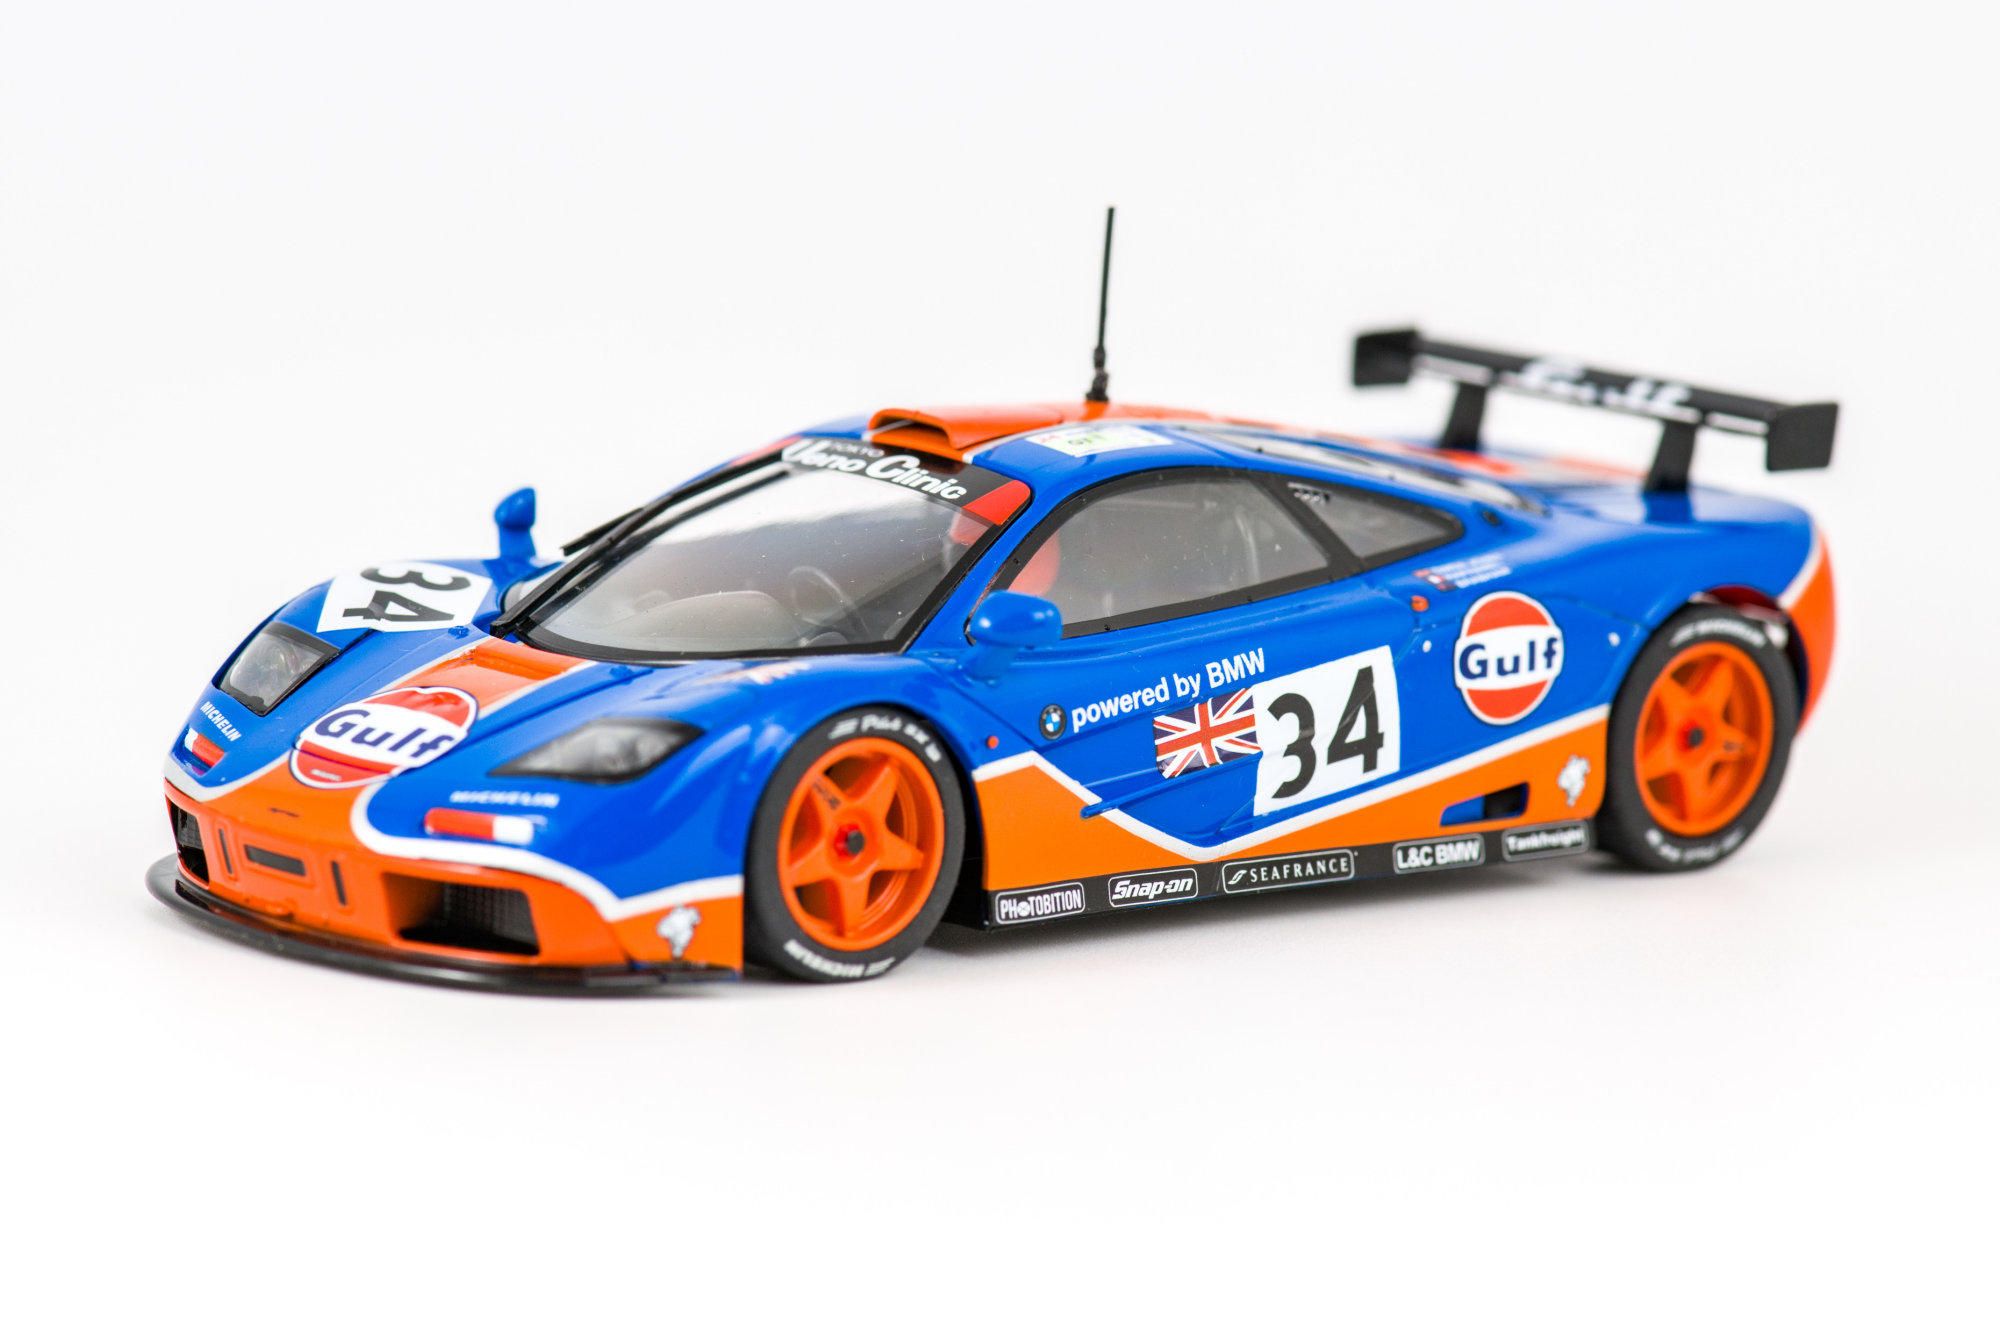 McLaren F1 GTR LeMans 1996 - Scalextric ROFGO Collection Gulf Triple Pack